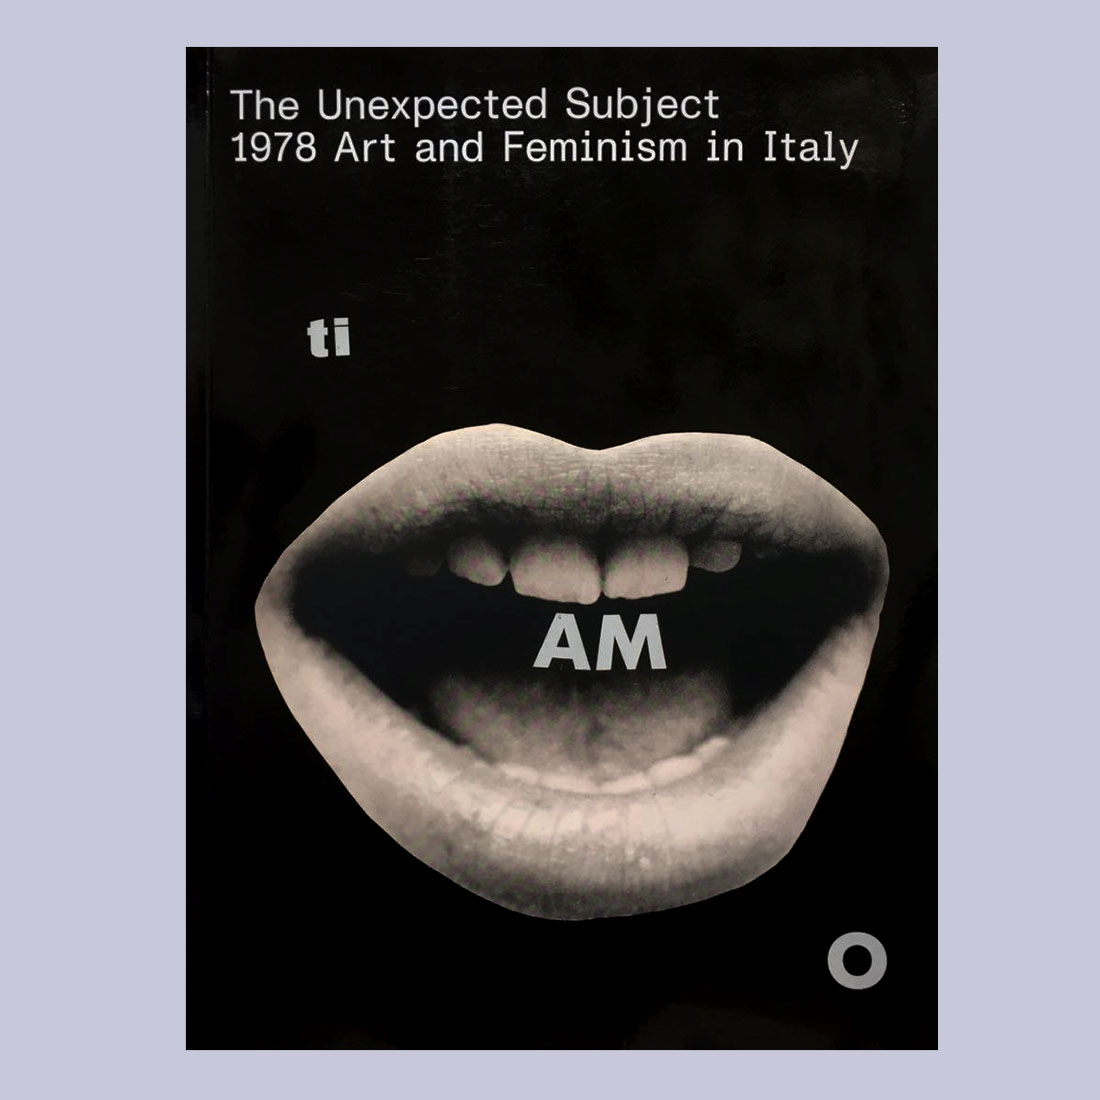 The Unexpected Subject - 1978 Art and Feminism in Italy